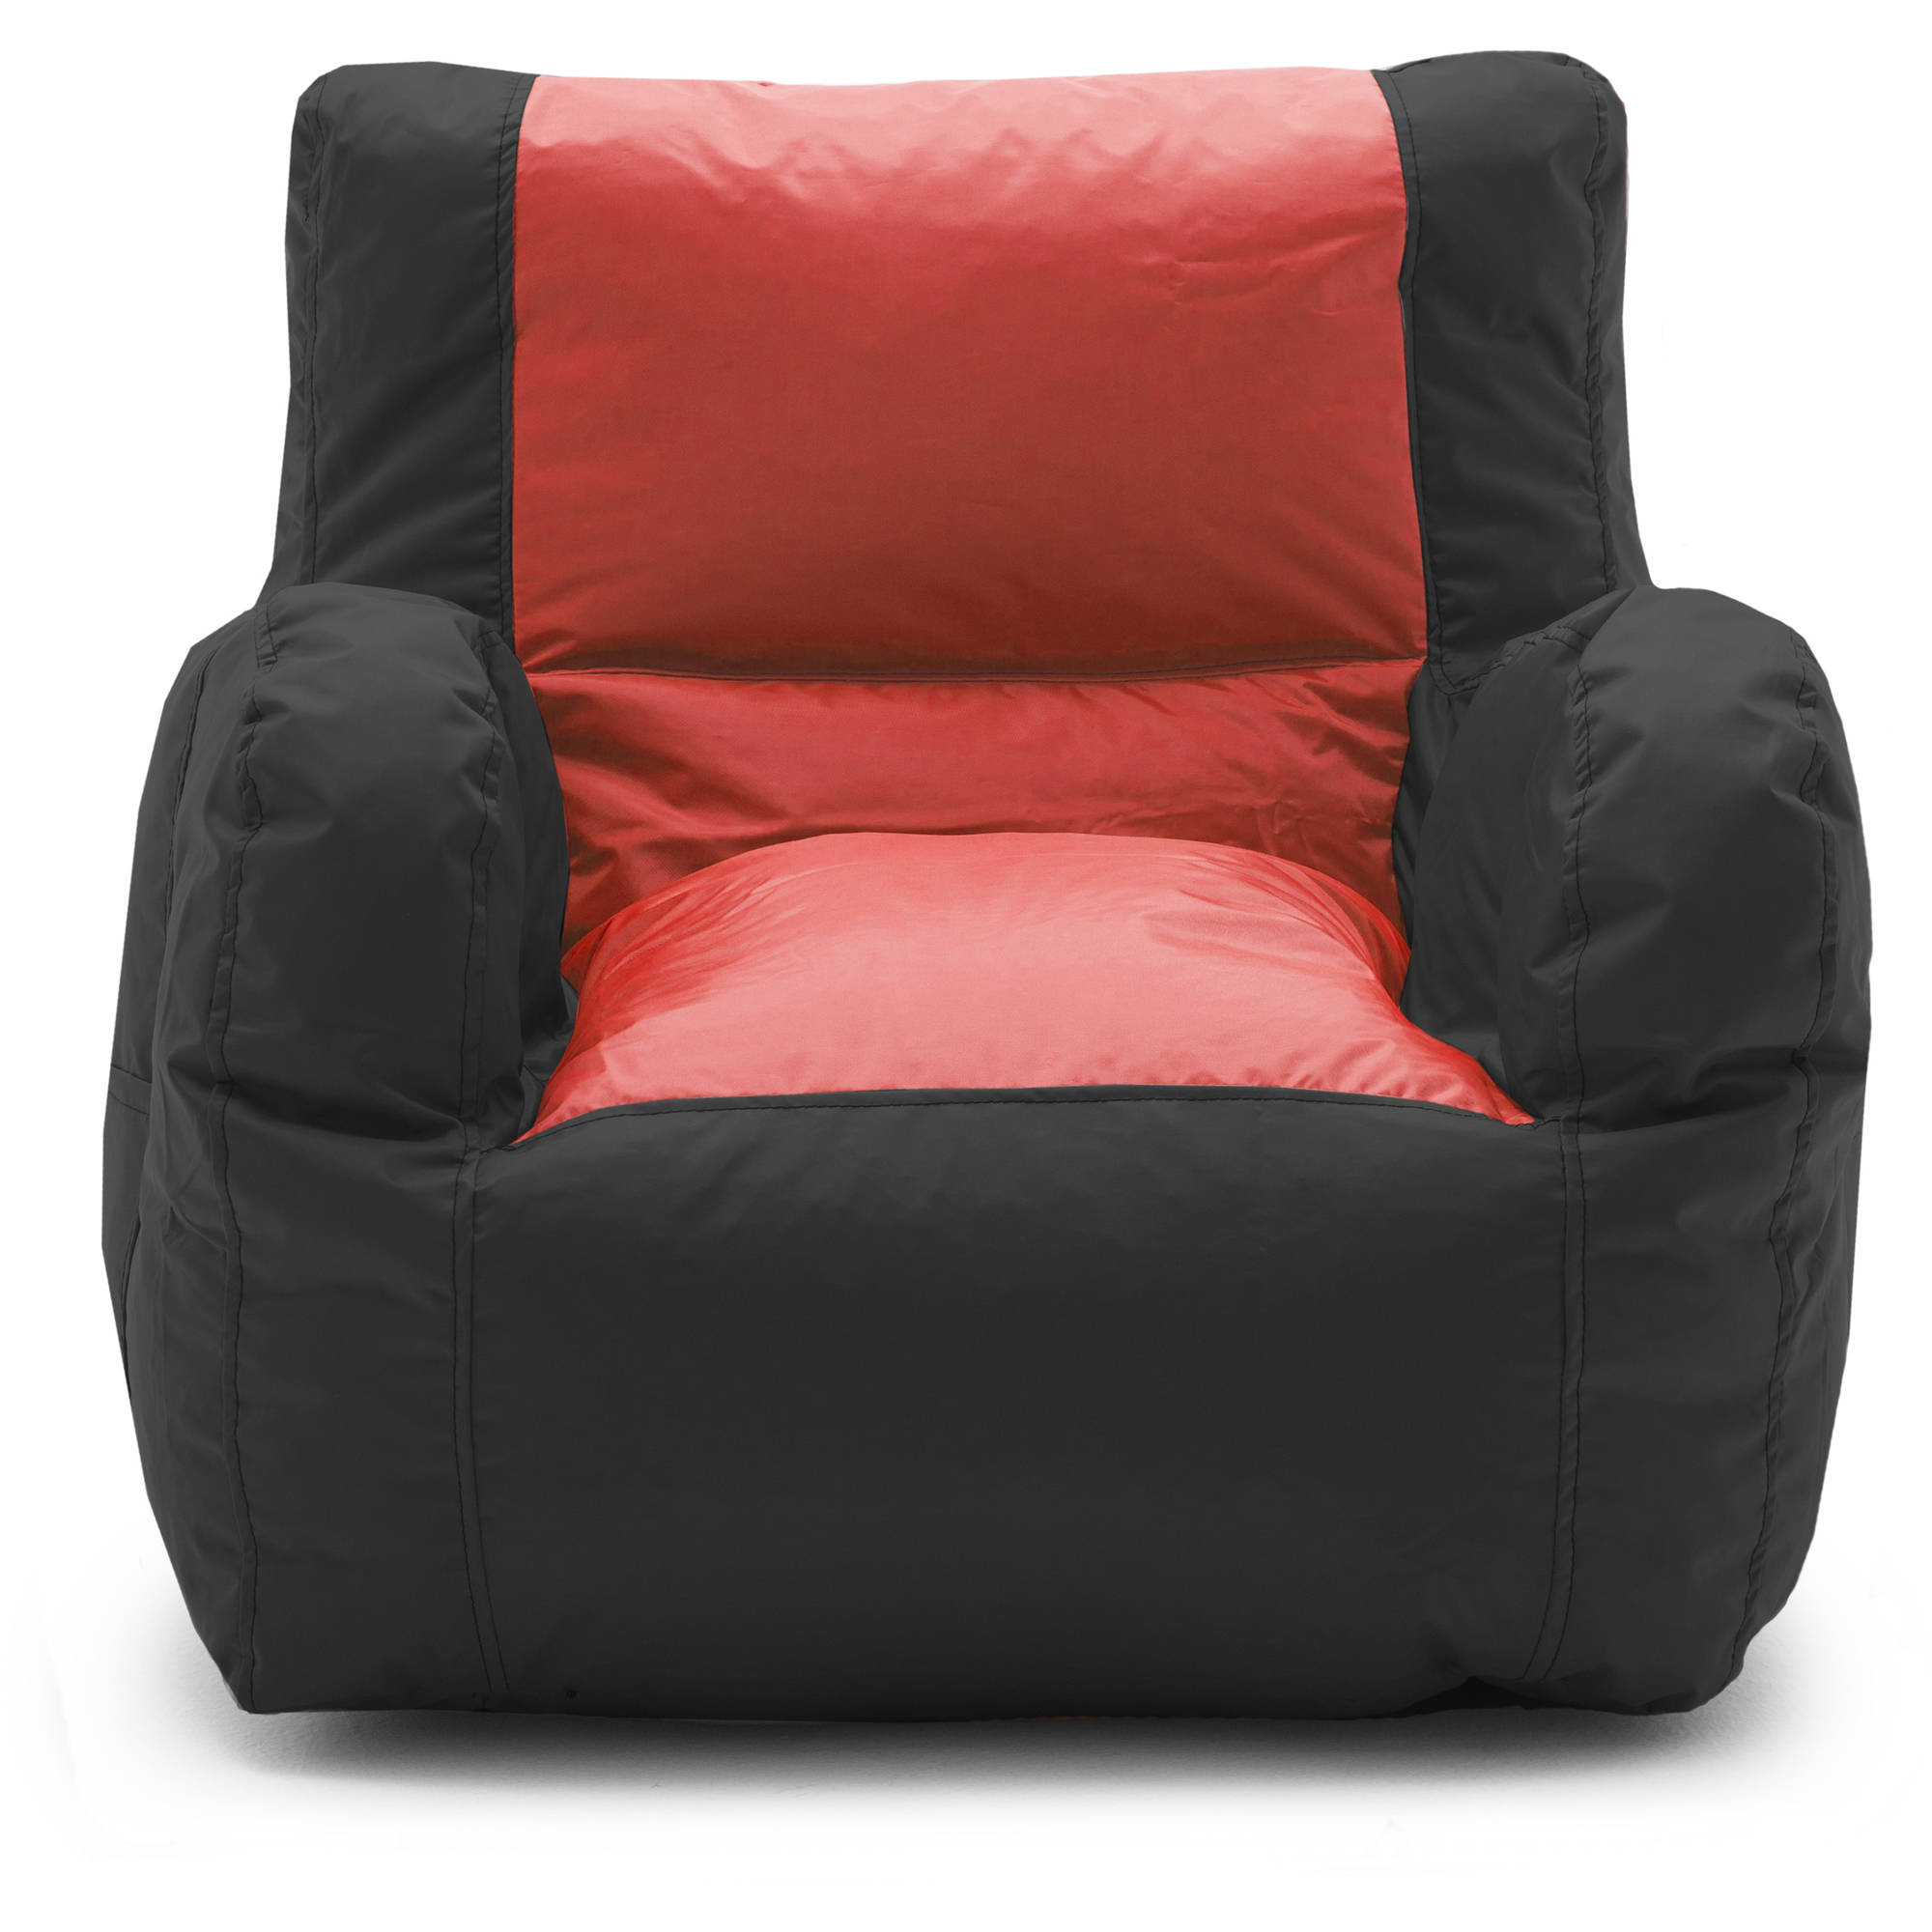 Big Joe SmartMax Duo Bean Bag Chair, Multiple Colors